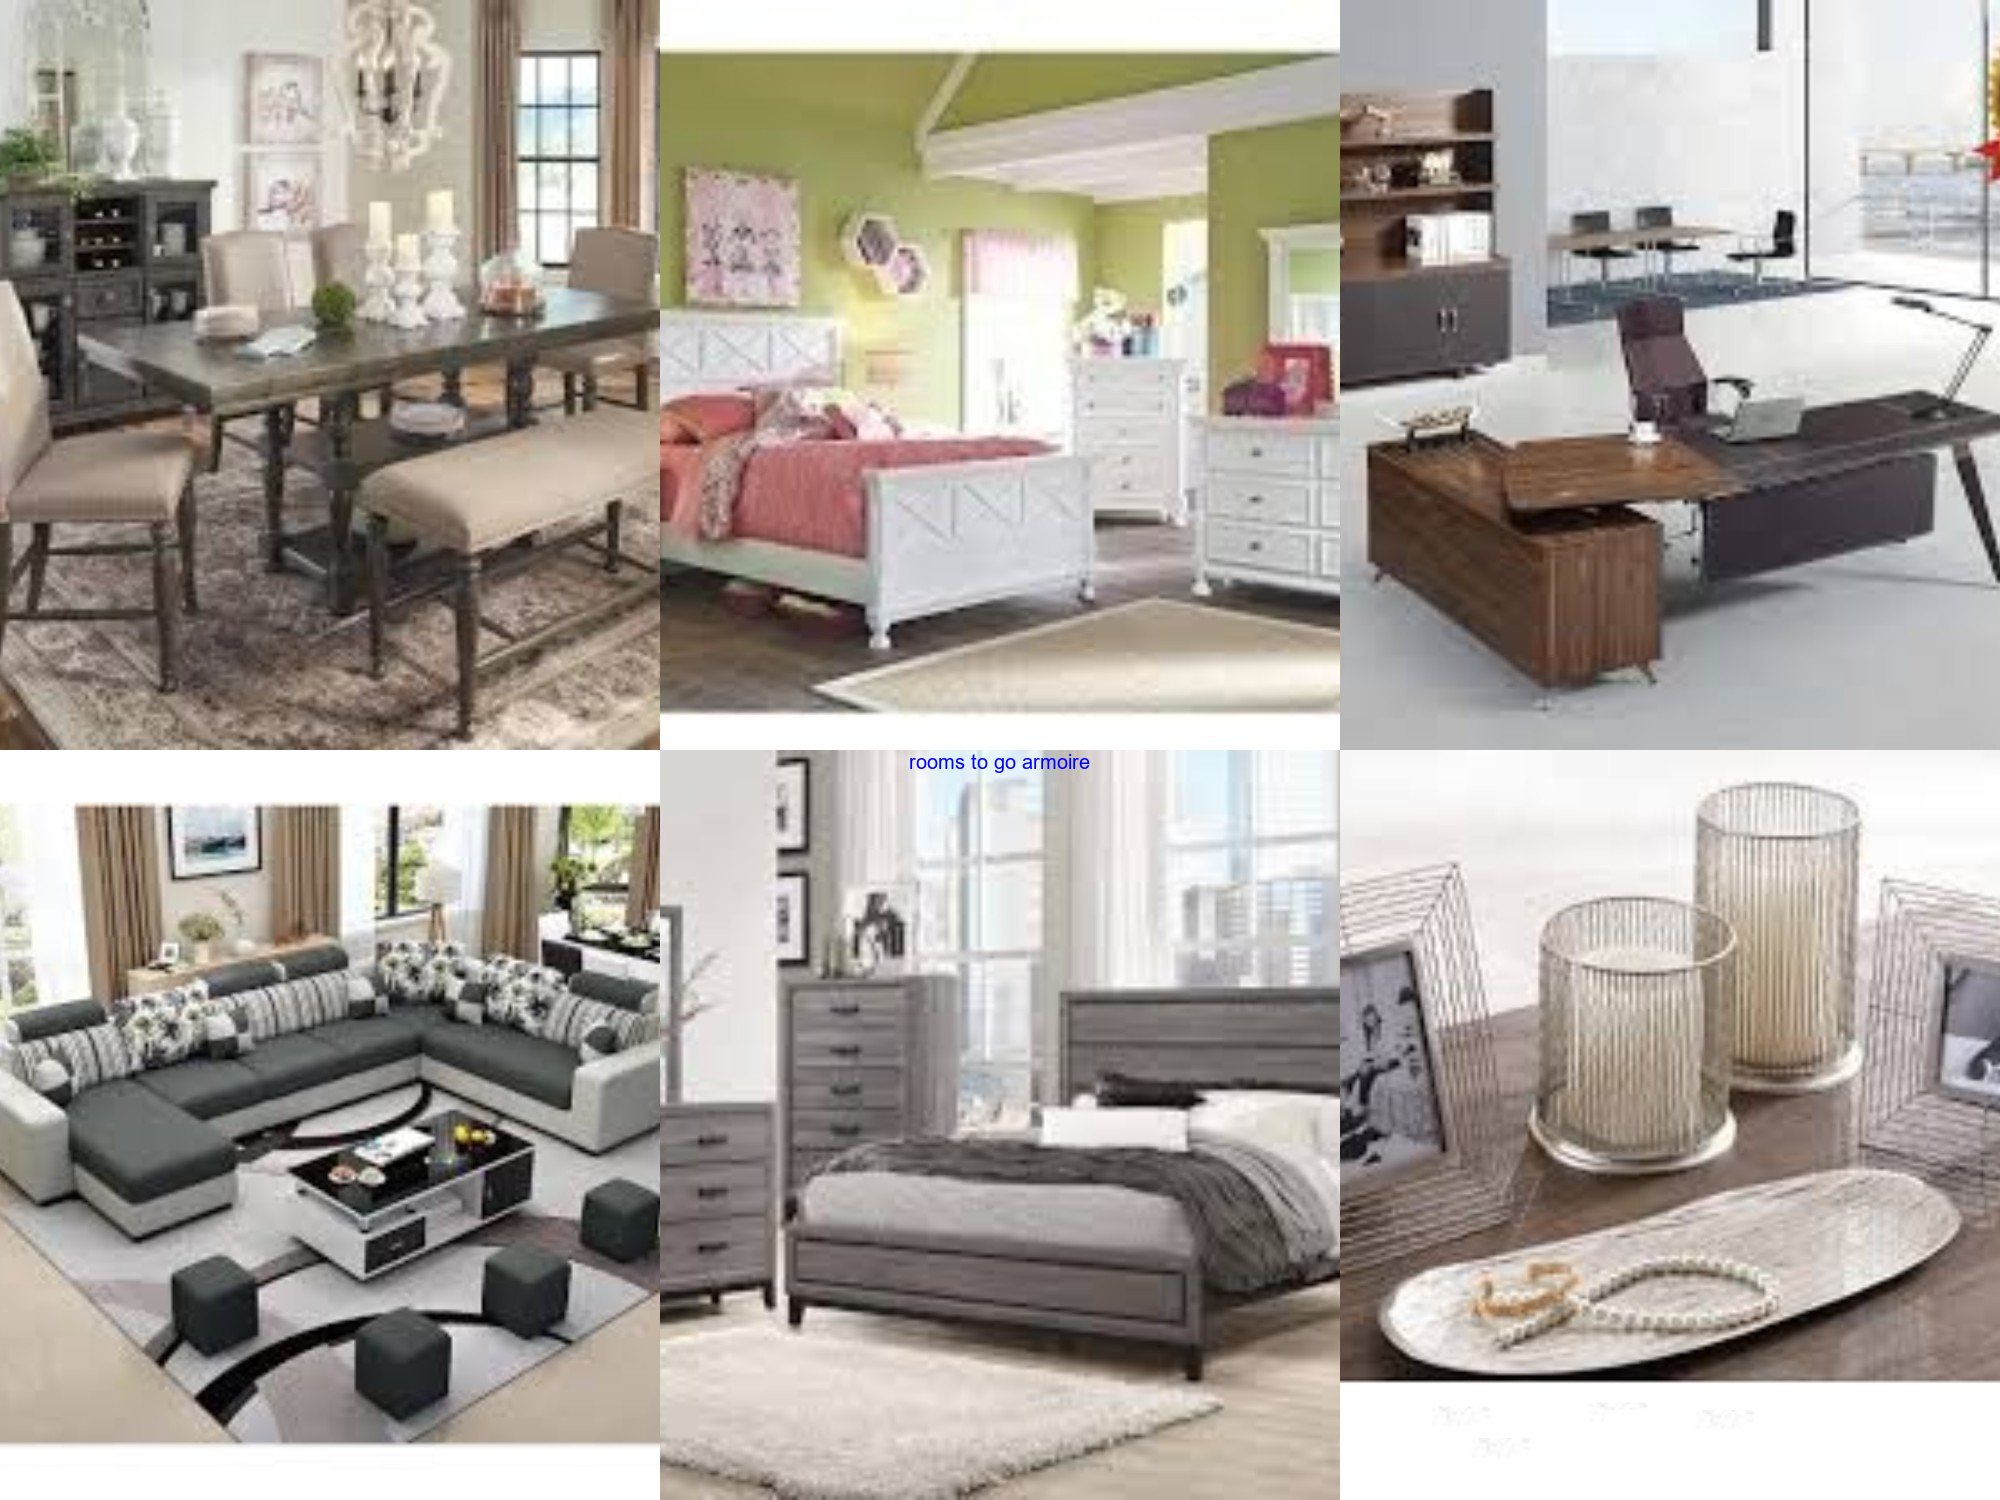 rooms to go armoire in 2020 Bed, Sofa, Armen